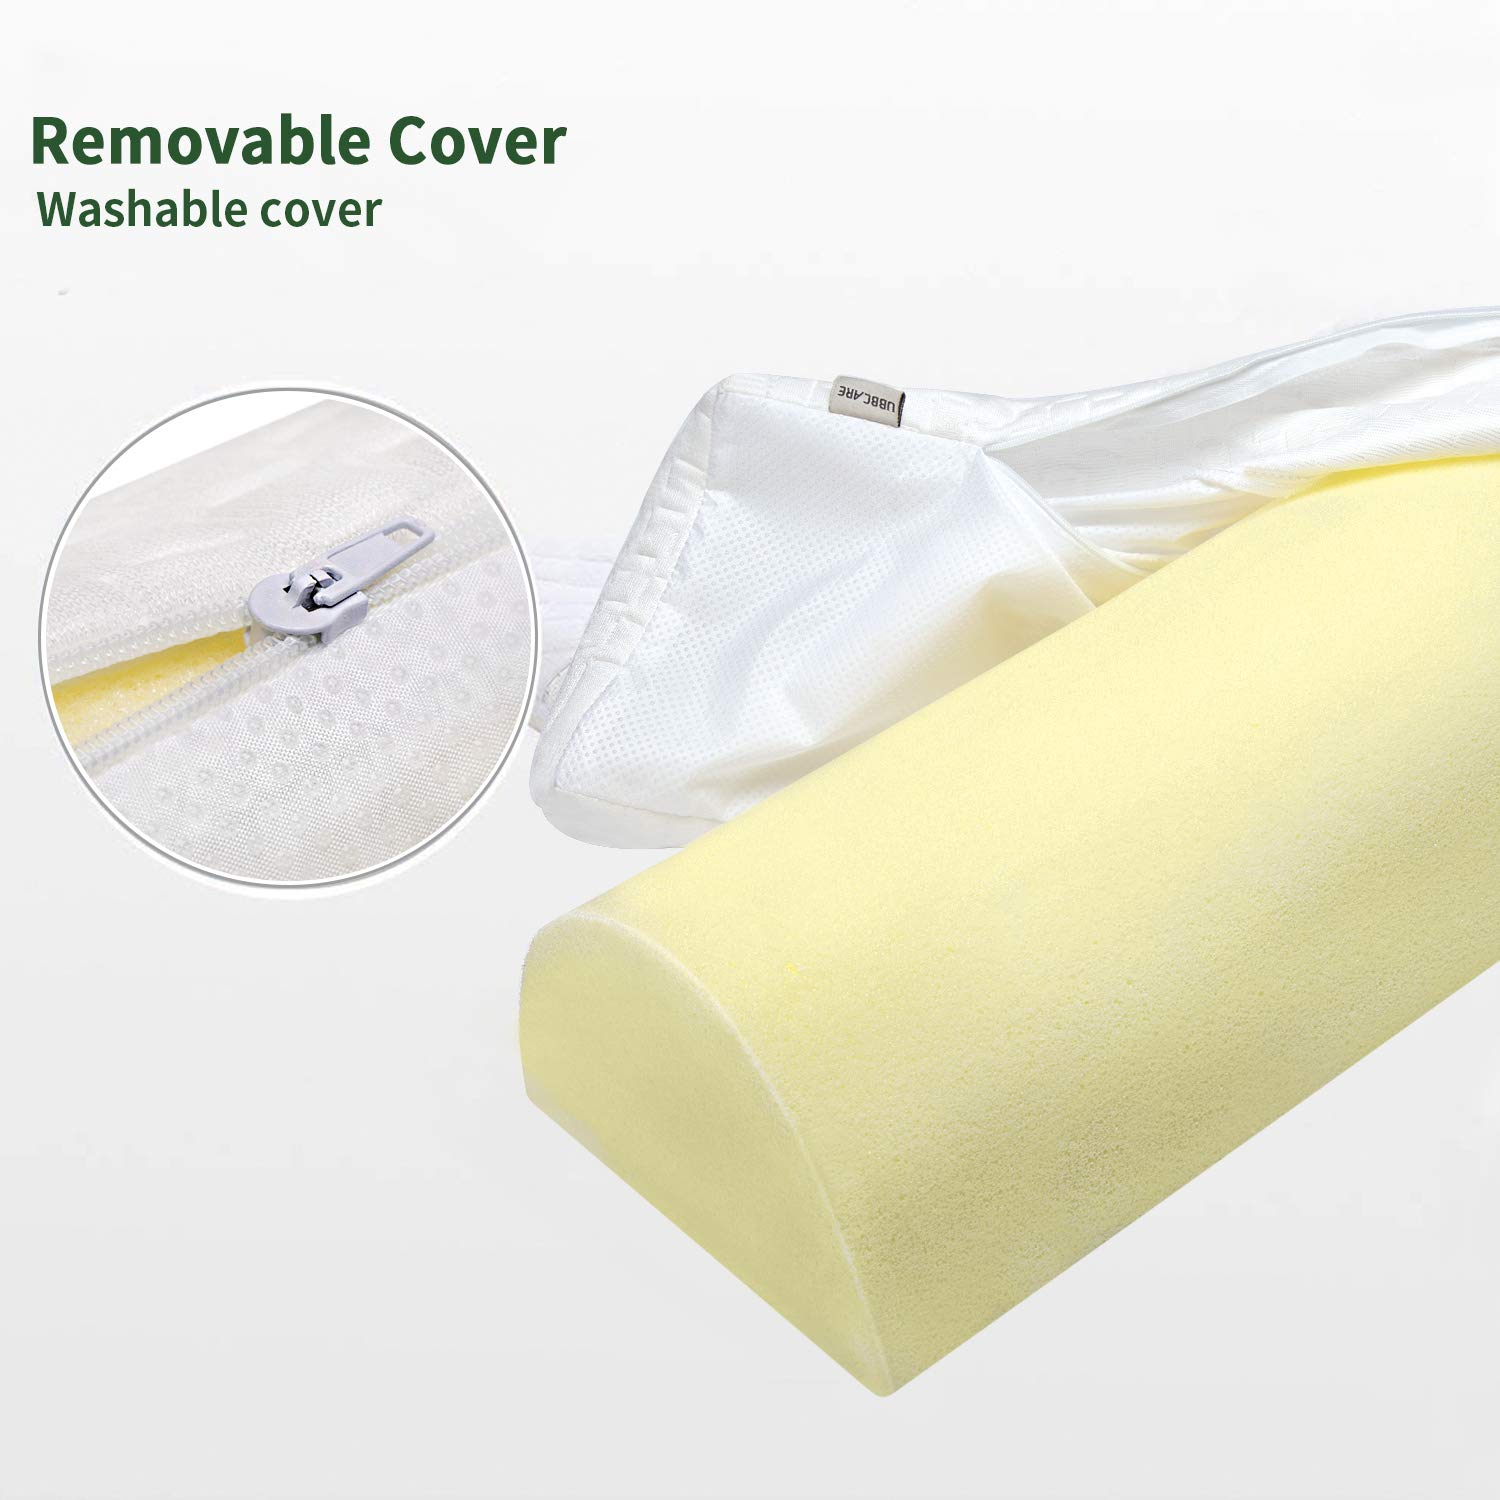 UBBCARE Memory Foam Toddlers Bed Rails Guard Bumpers Soft Portable Toddler Bed Safety Long Bedside Pillow Pads for Crib Kids Twin Baby Elderly with Machine Washable Cover 1 PC